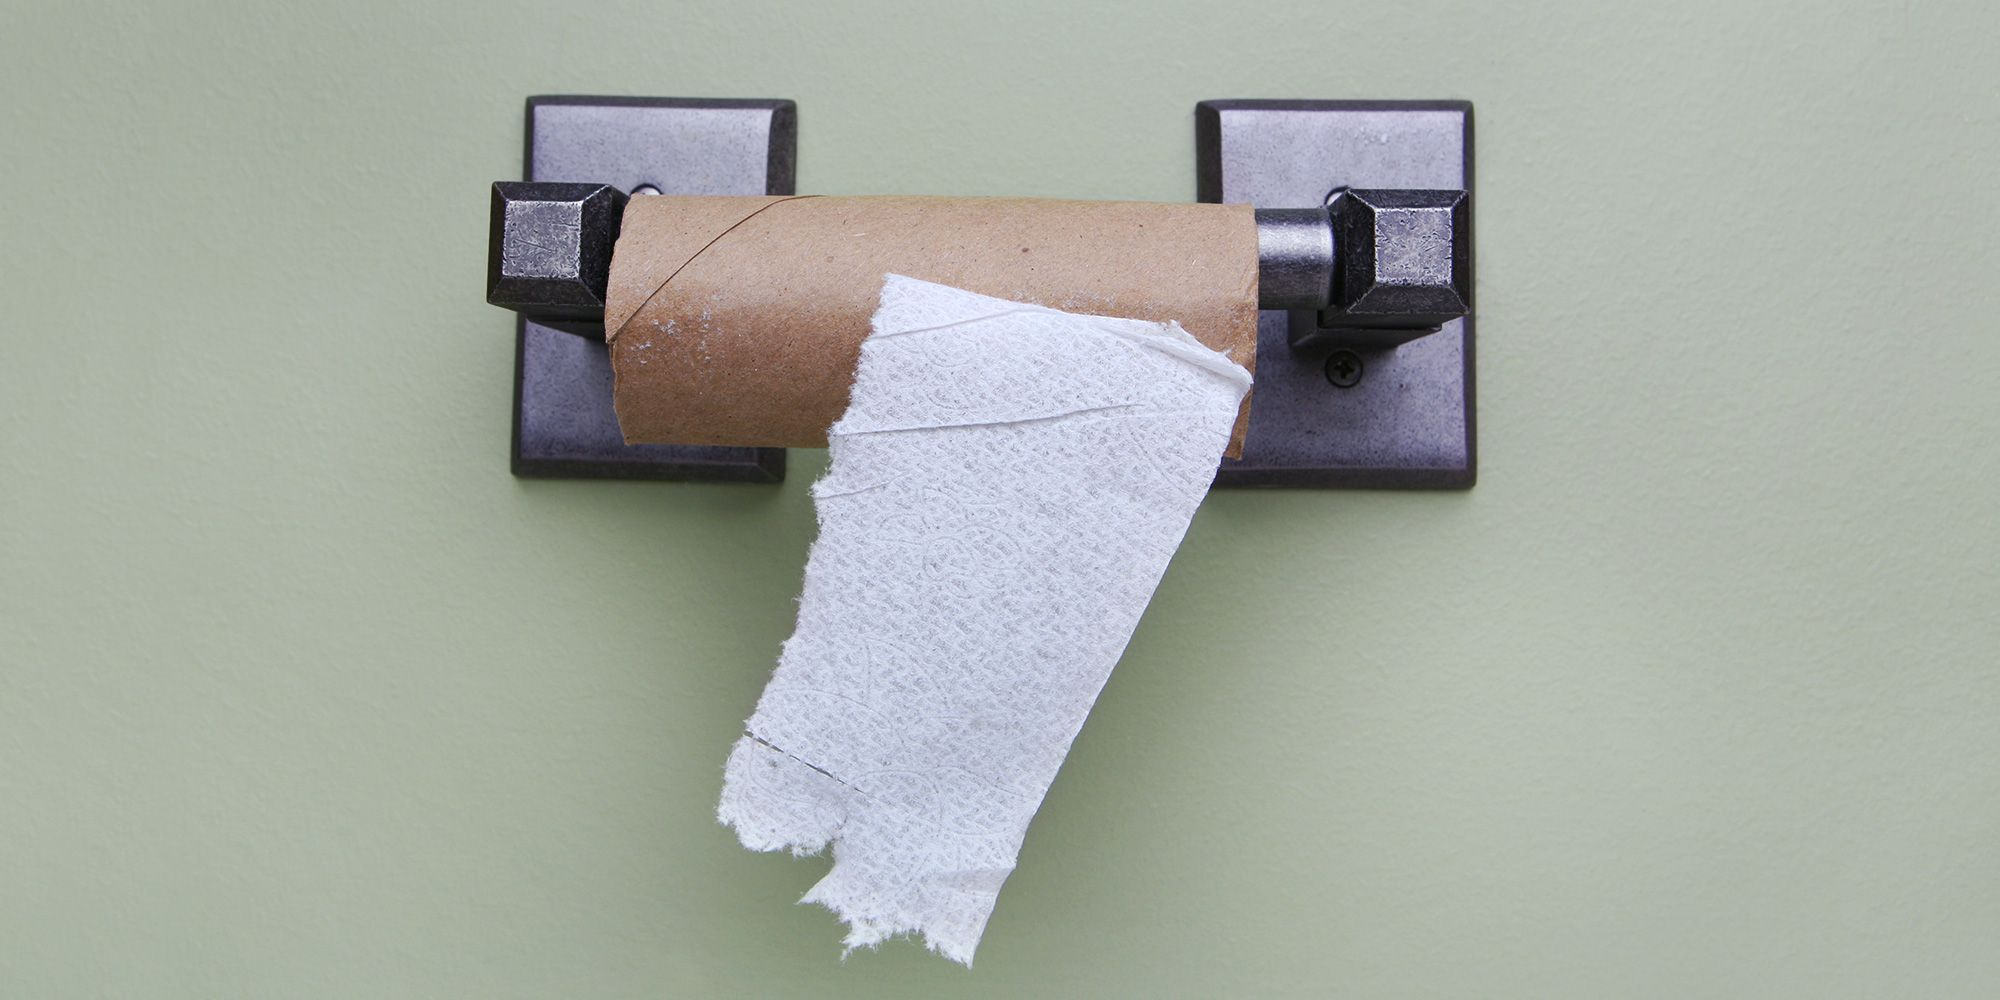 12 Reasons Why You Just Can't Poop